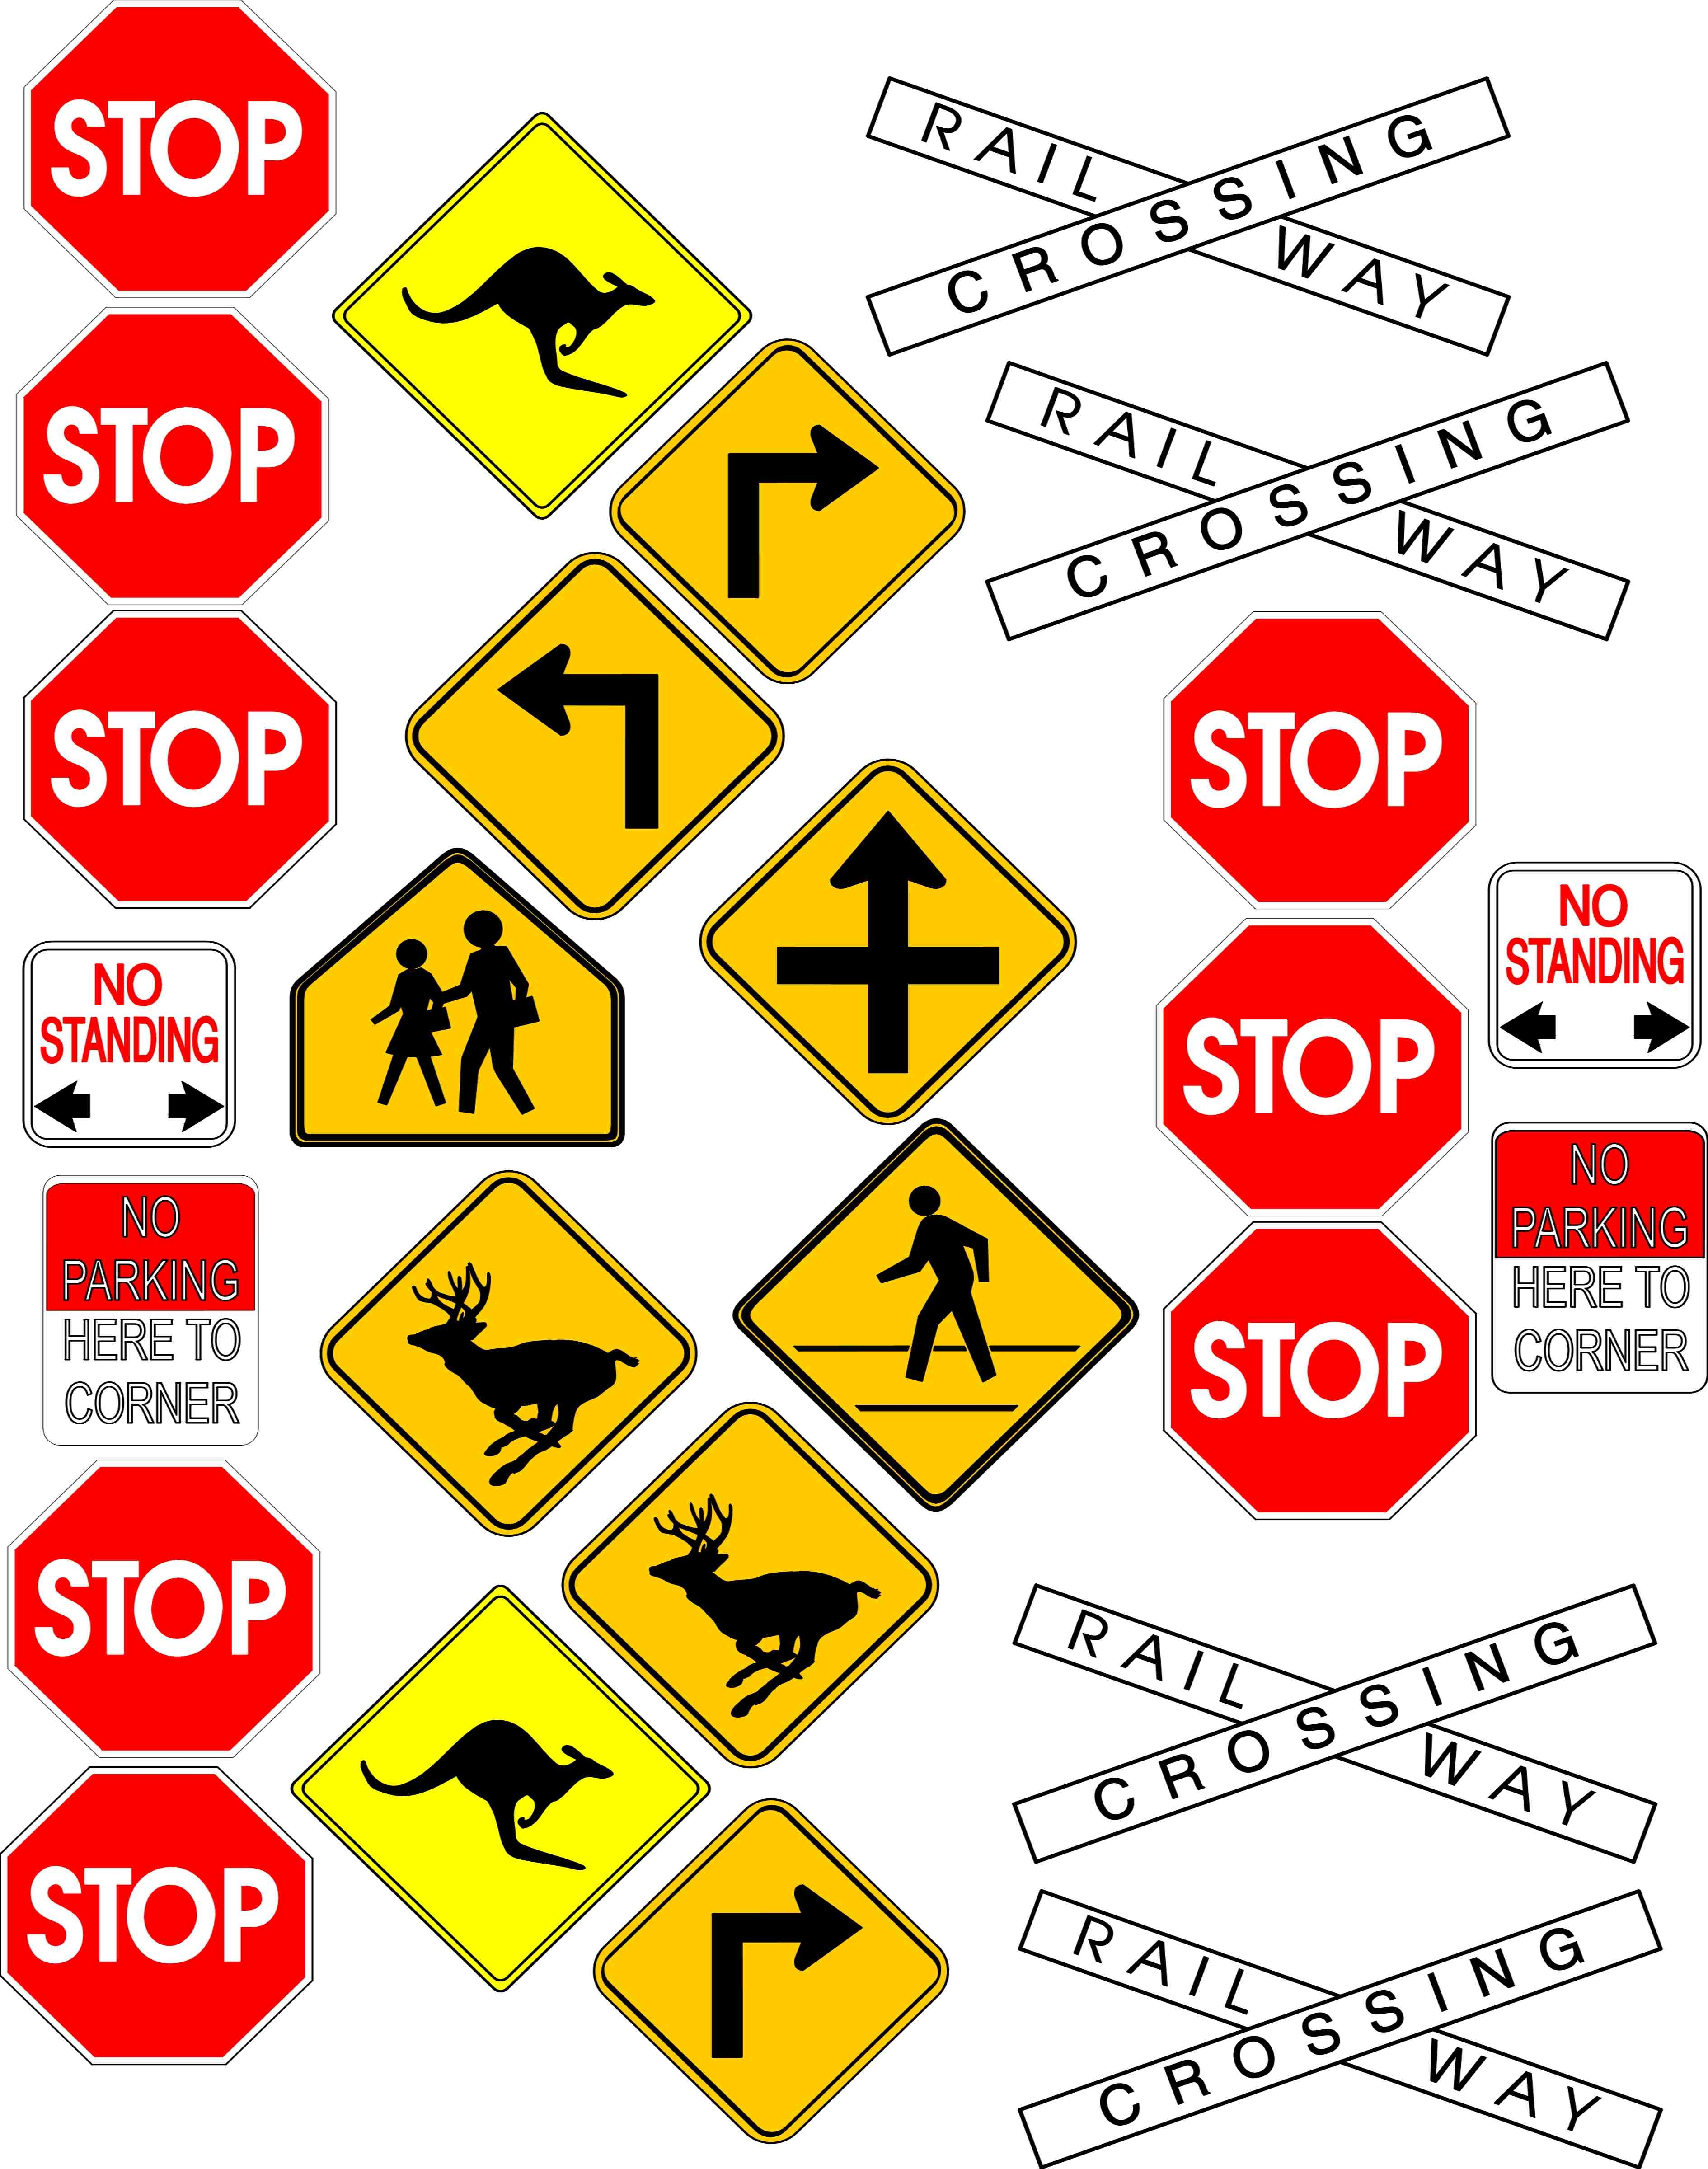 Street Sign Meanings   Free Cliparts That You Can Download To You